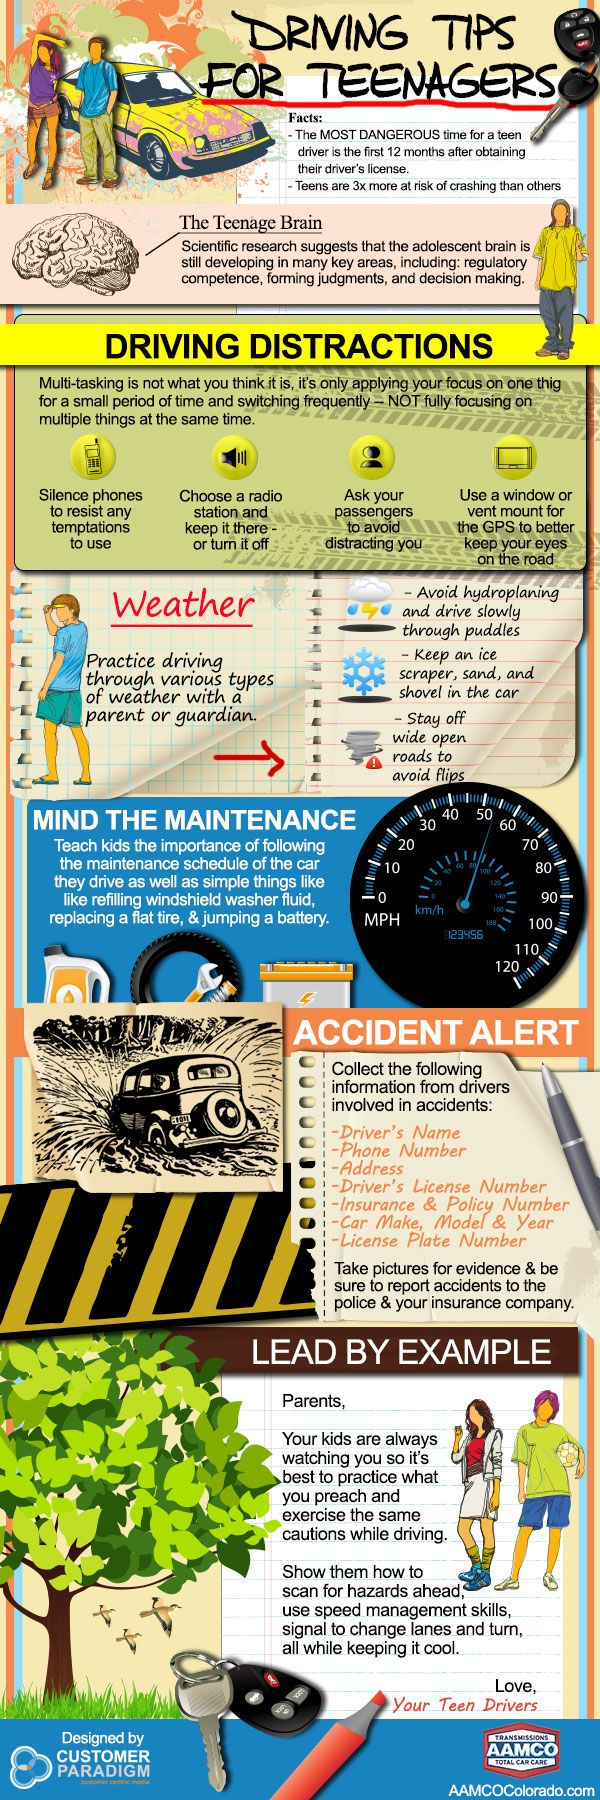 Driving Tips for Teenagers (and adults!) #teens #driving